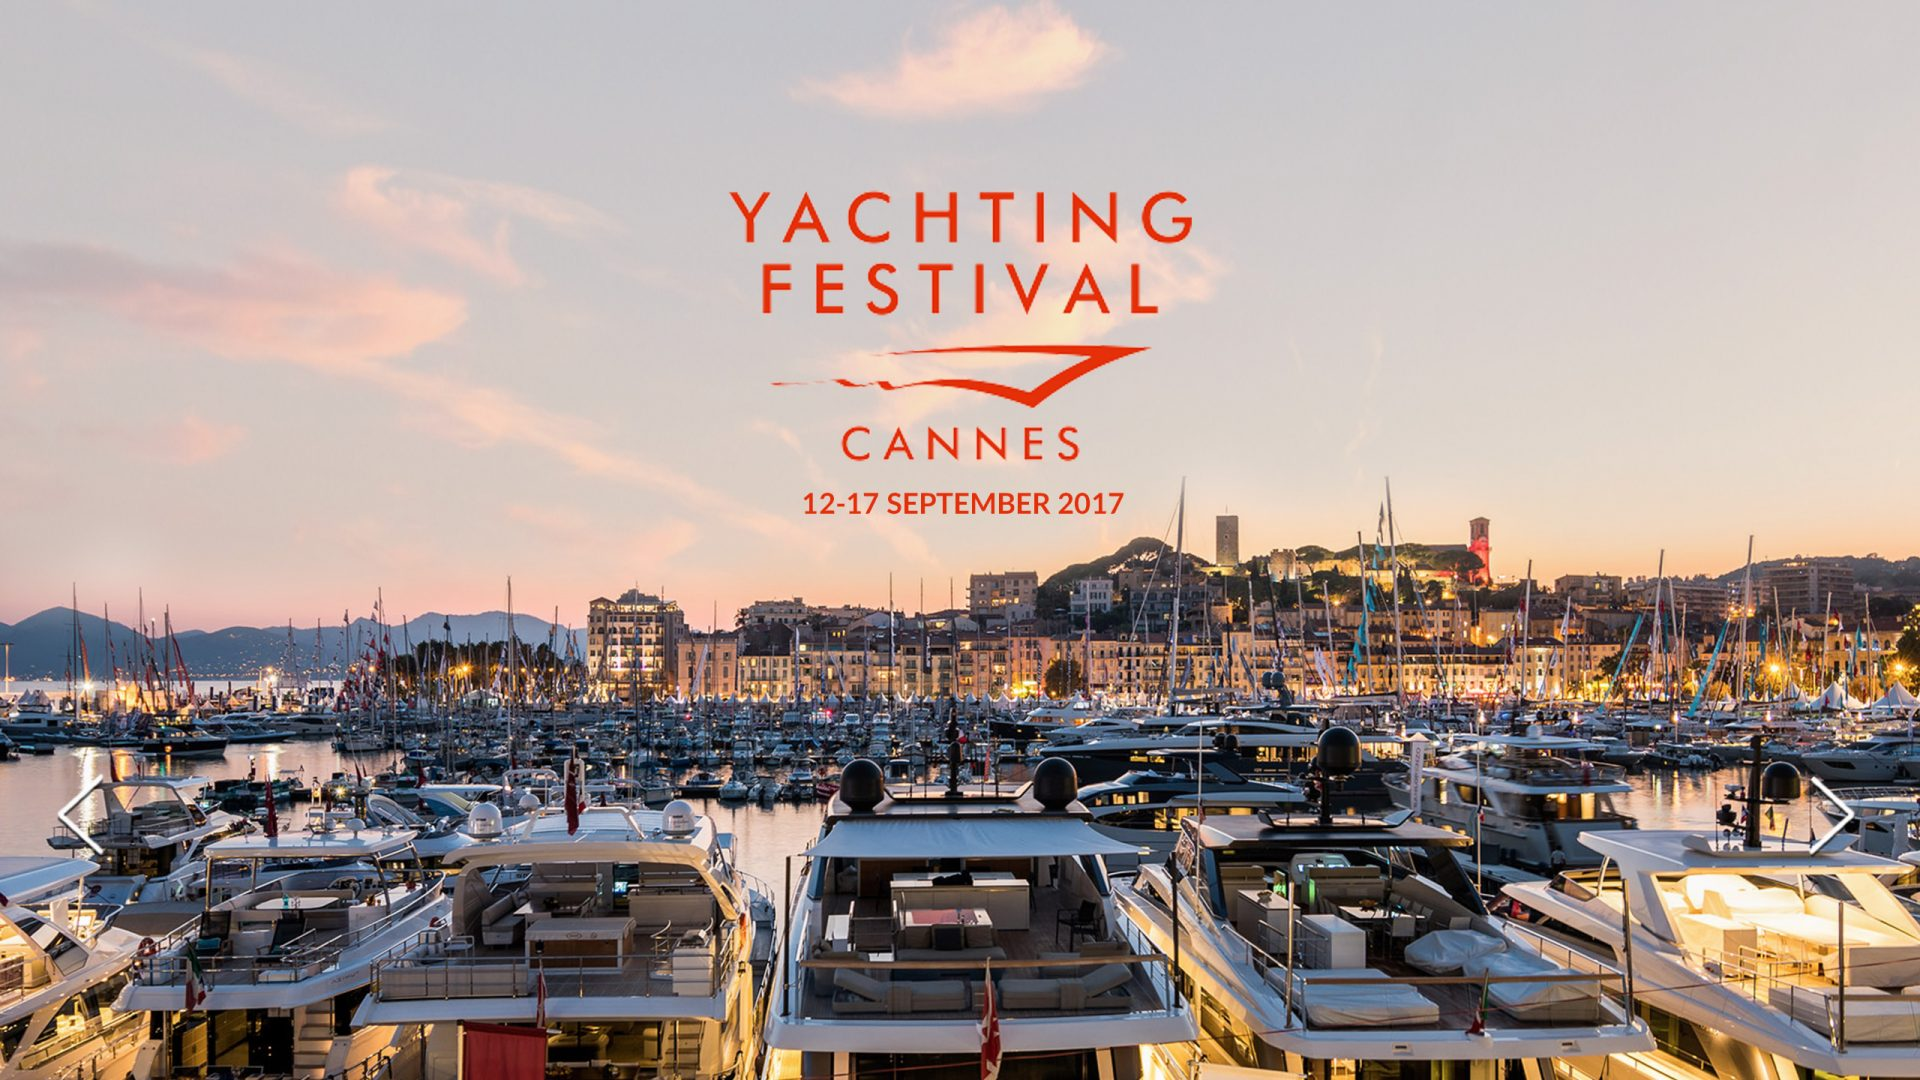 Salon Nautique Cannes Cannes Yachting Festival 2017 Naval Tecno Sud